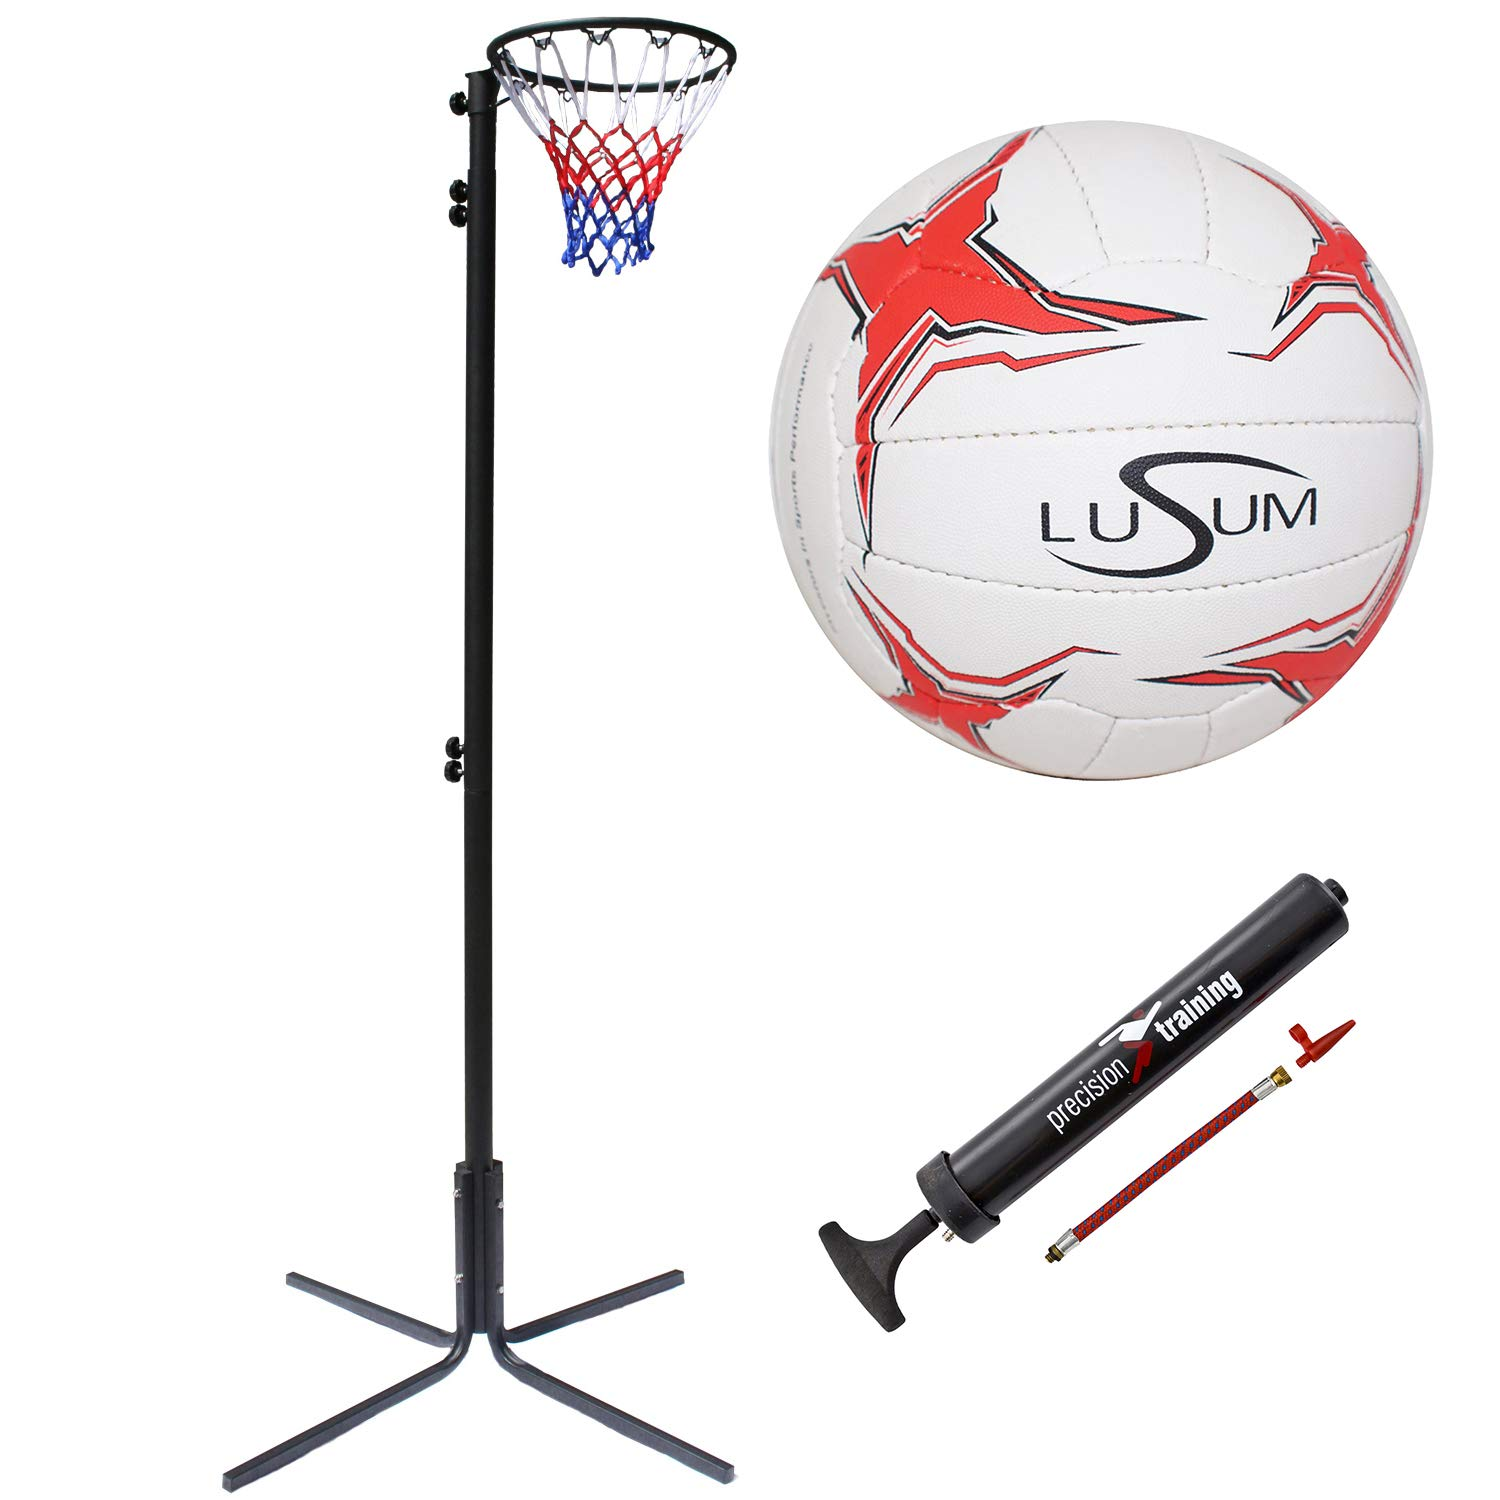 Lusum Optio Netball with Pump 7/' to 10/' Bee-Ball Freestanding Netball Post Package Official Height Adjustable Stand from 2.25 to 3.05 meters